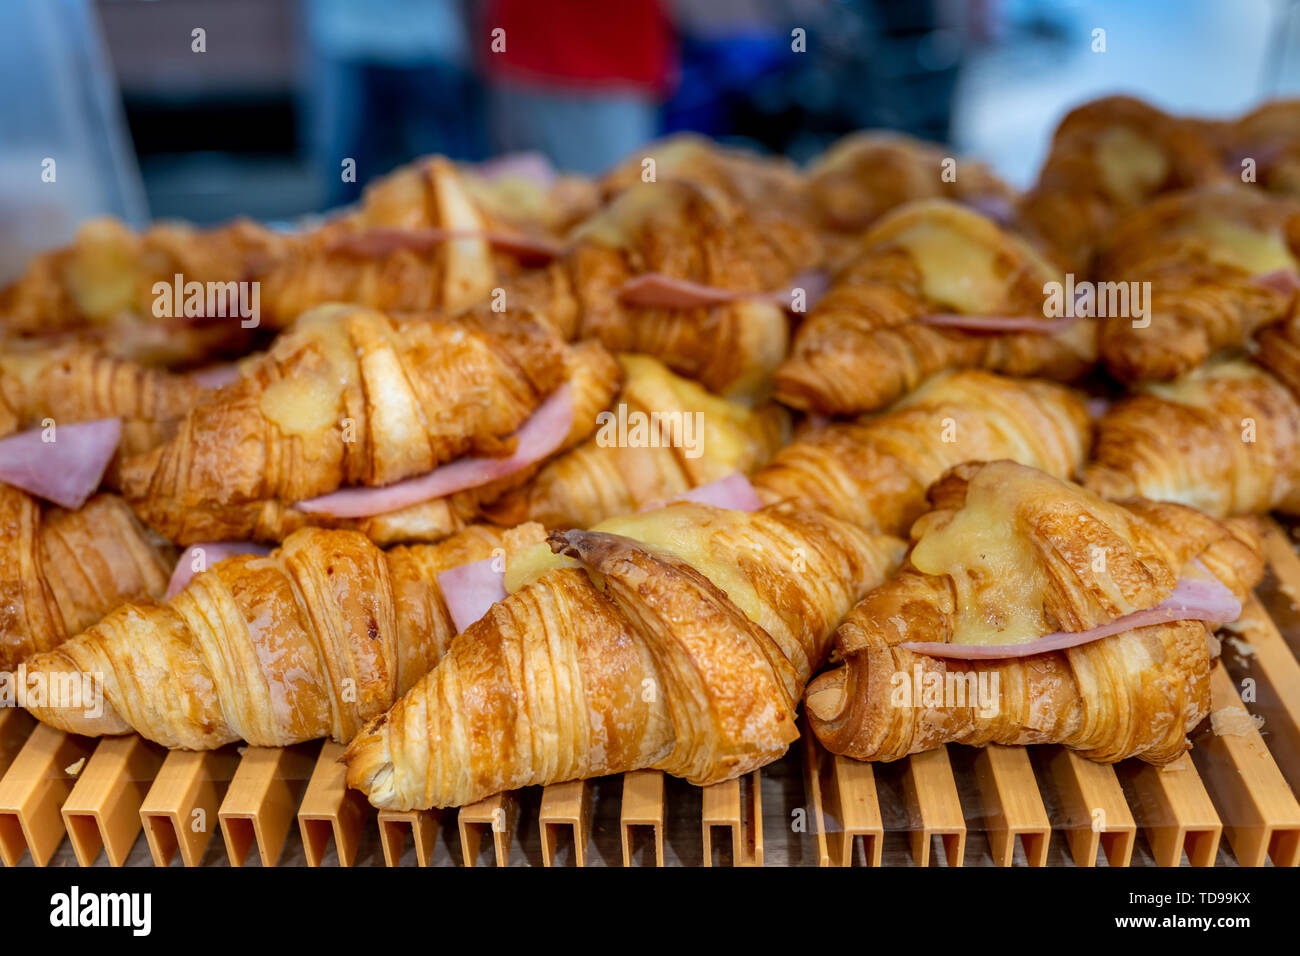 Closeup photo of cheese ham croissant in pastry shop - Stock Image